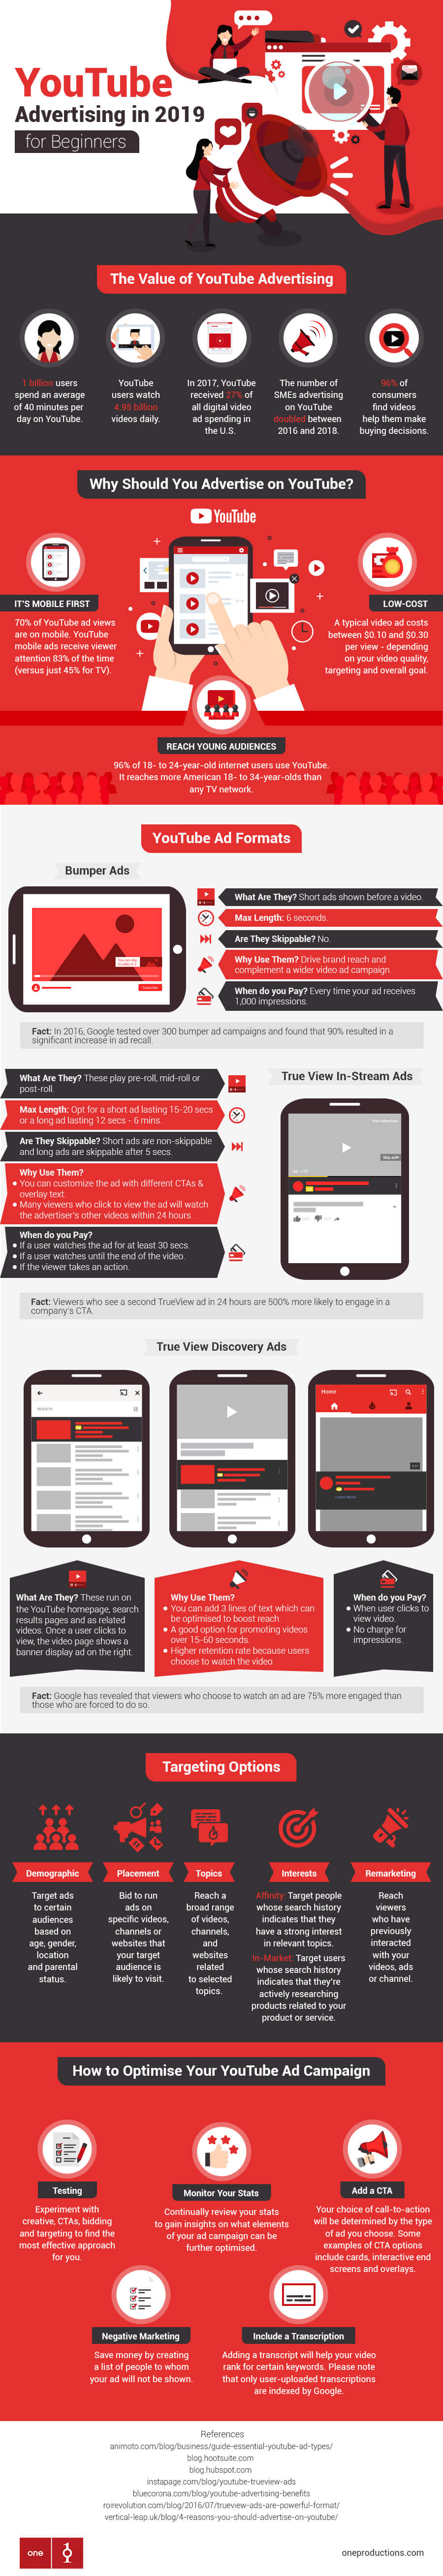 YouTube-Advertising-For-Beginners-Infographic